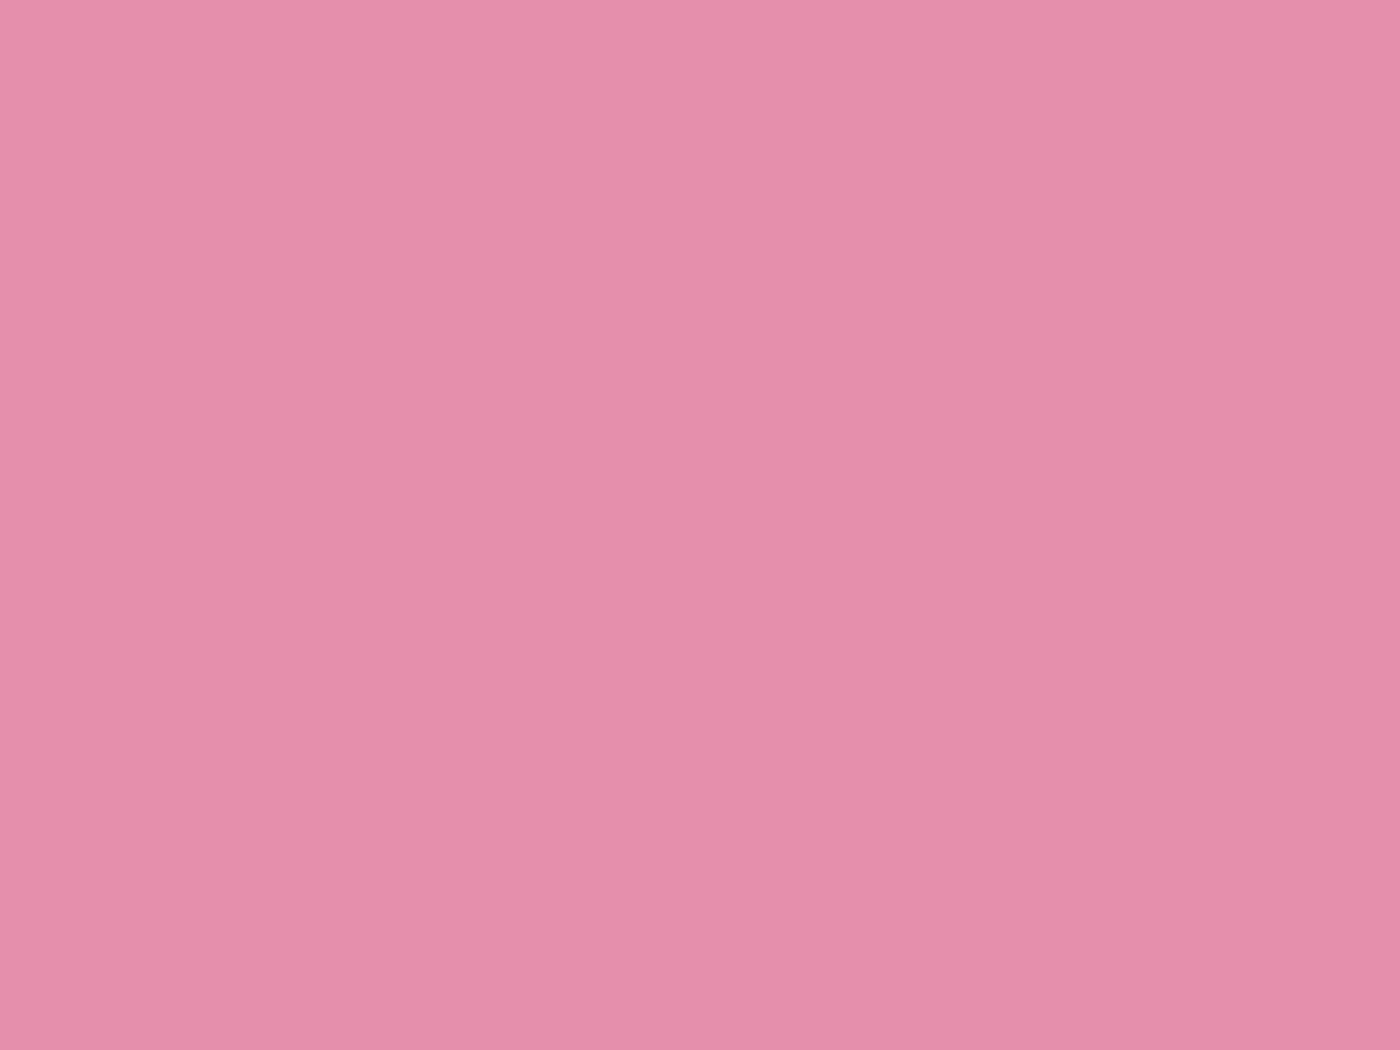 1400x1050 Light Thulian Pink Solid Color Background